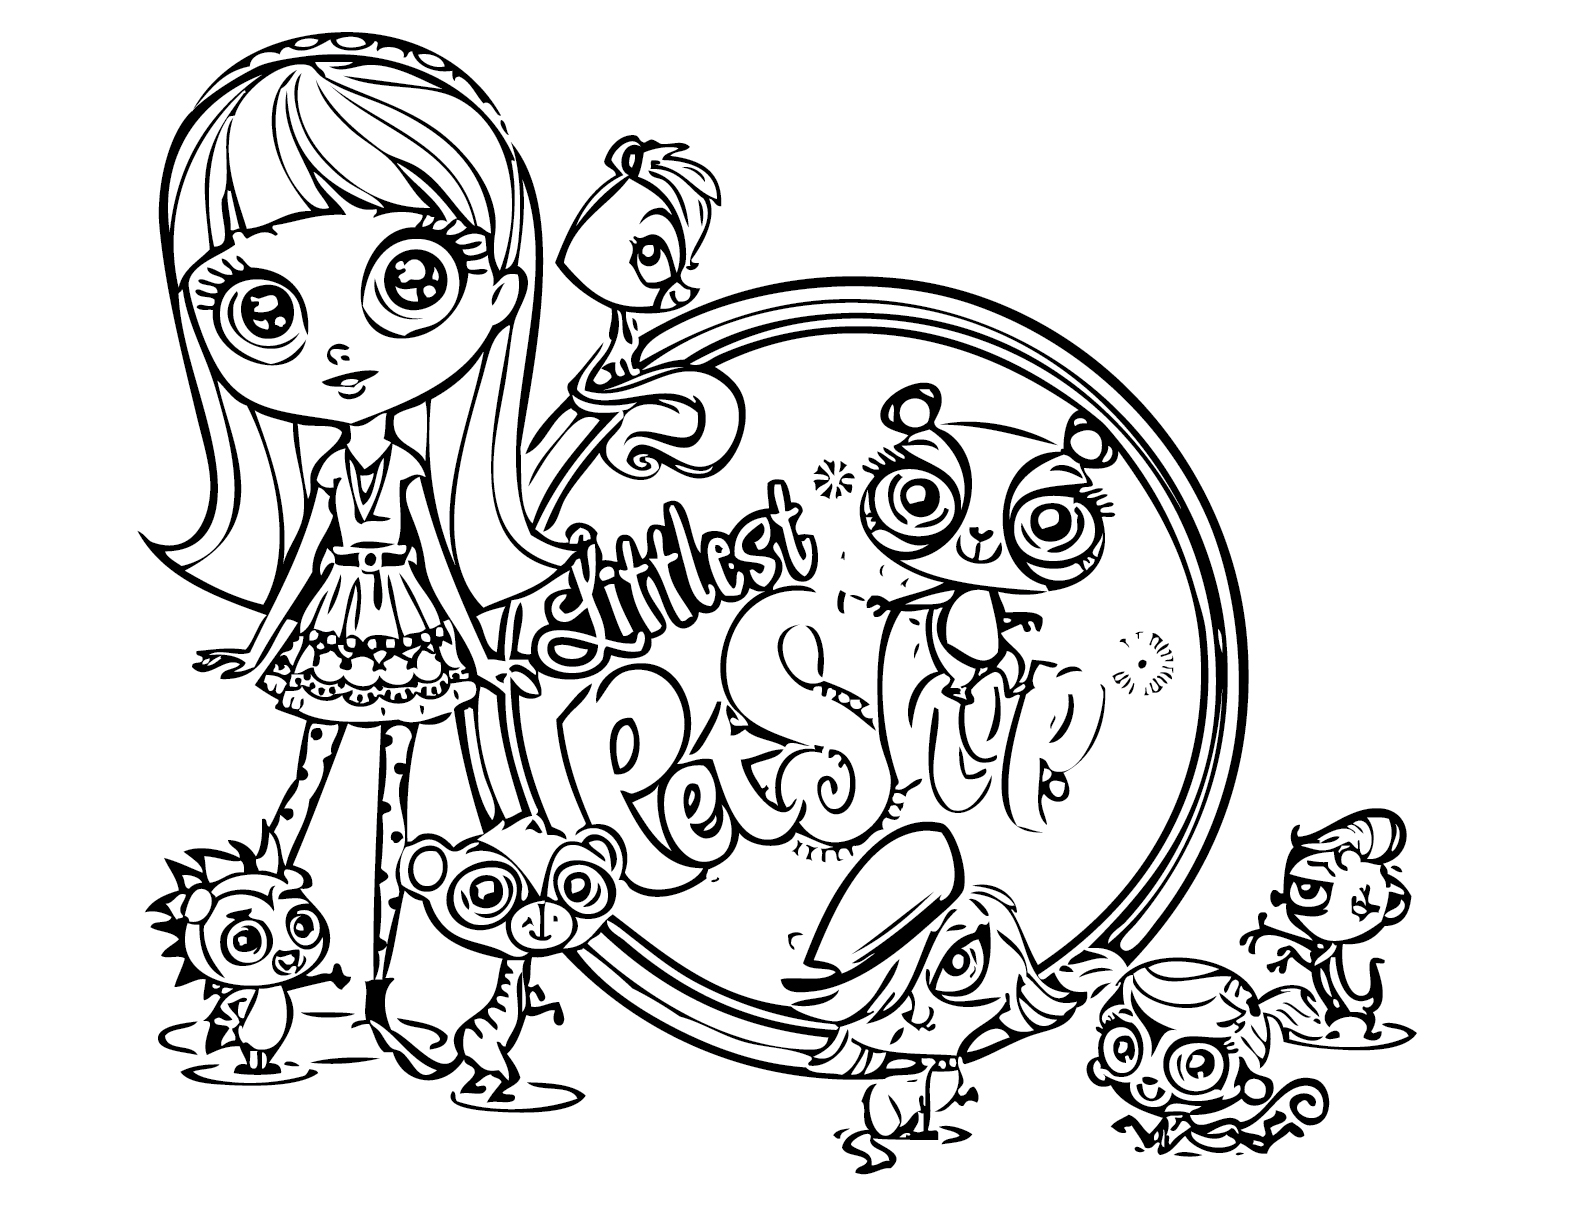 littlest petshop coloring pages - Cute Littlest Pet Shop Coloring Pages